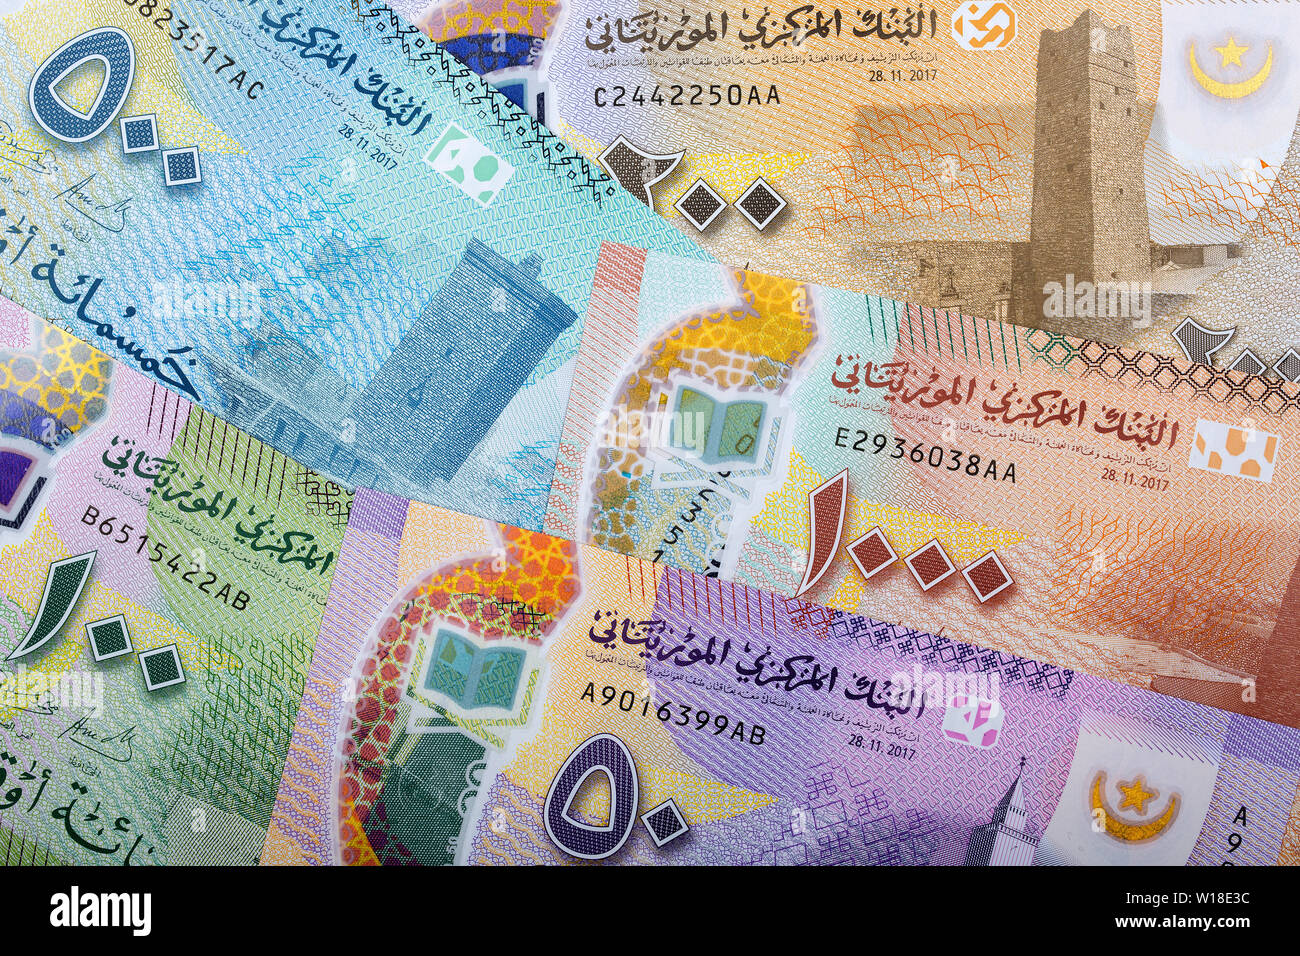 Money from Mauritania, a business background - Stock Image